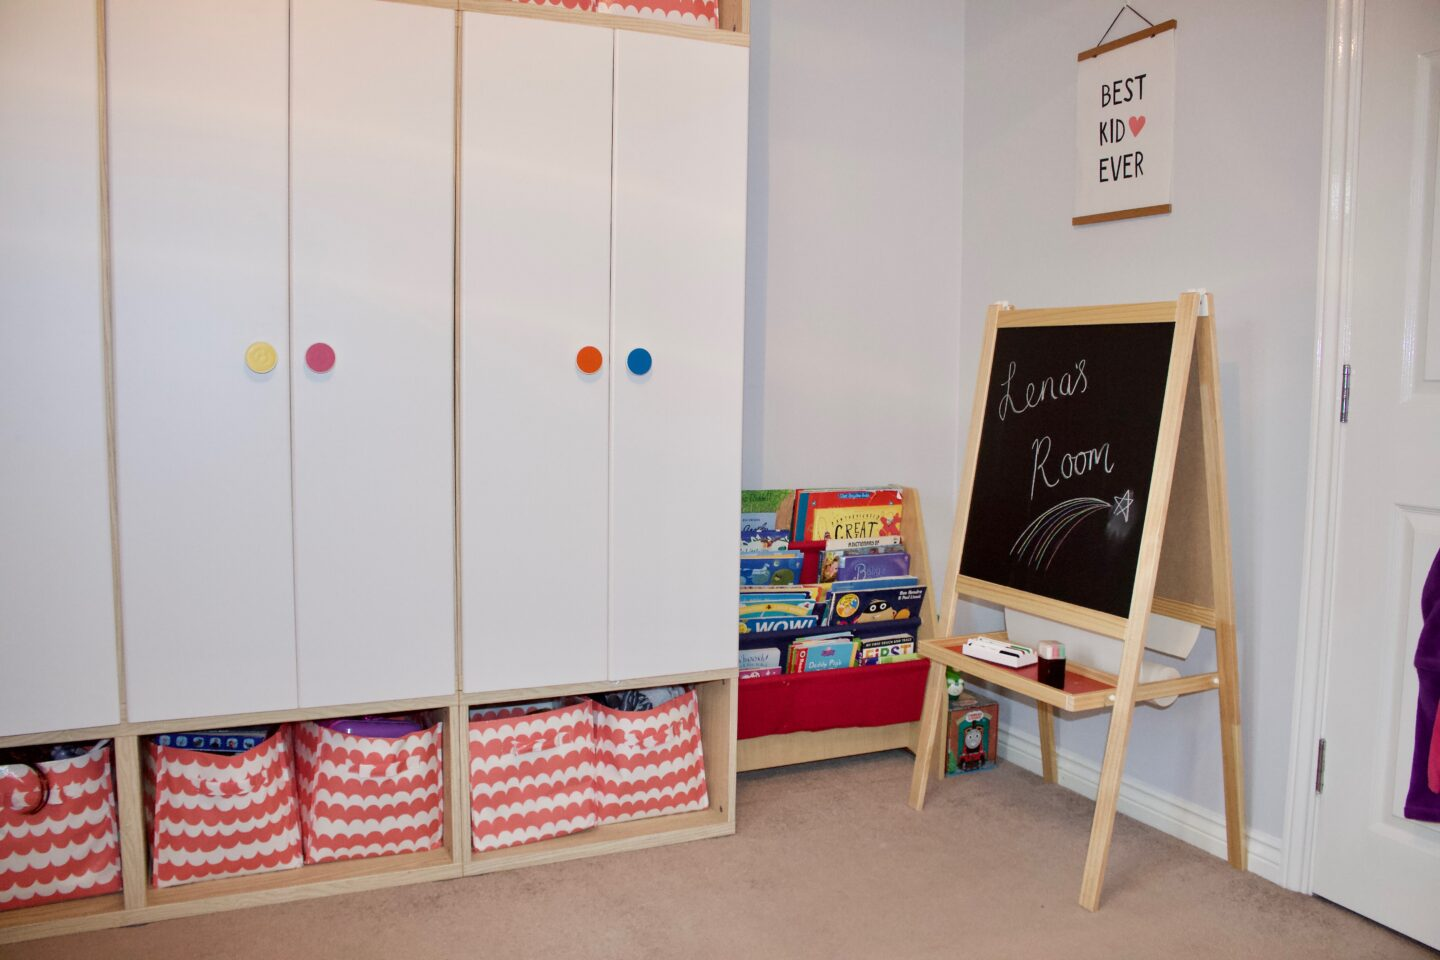 A child's bedroom with a bookshelf and an art easel